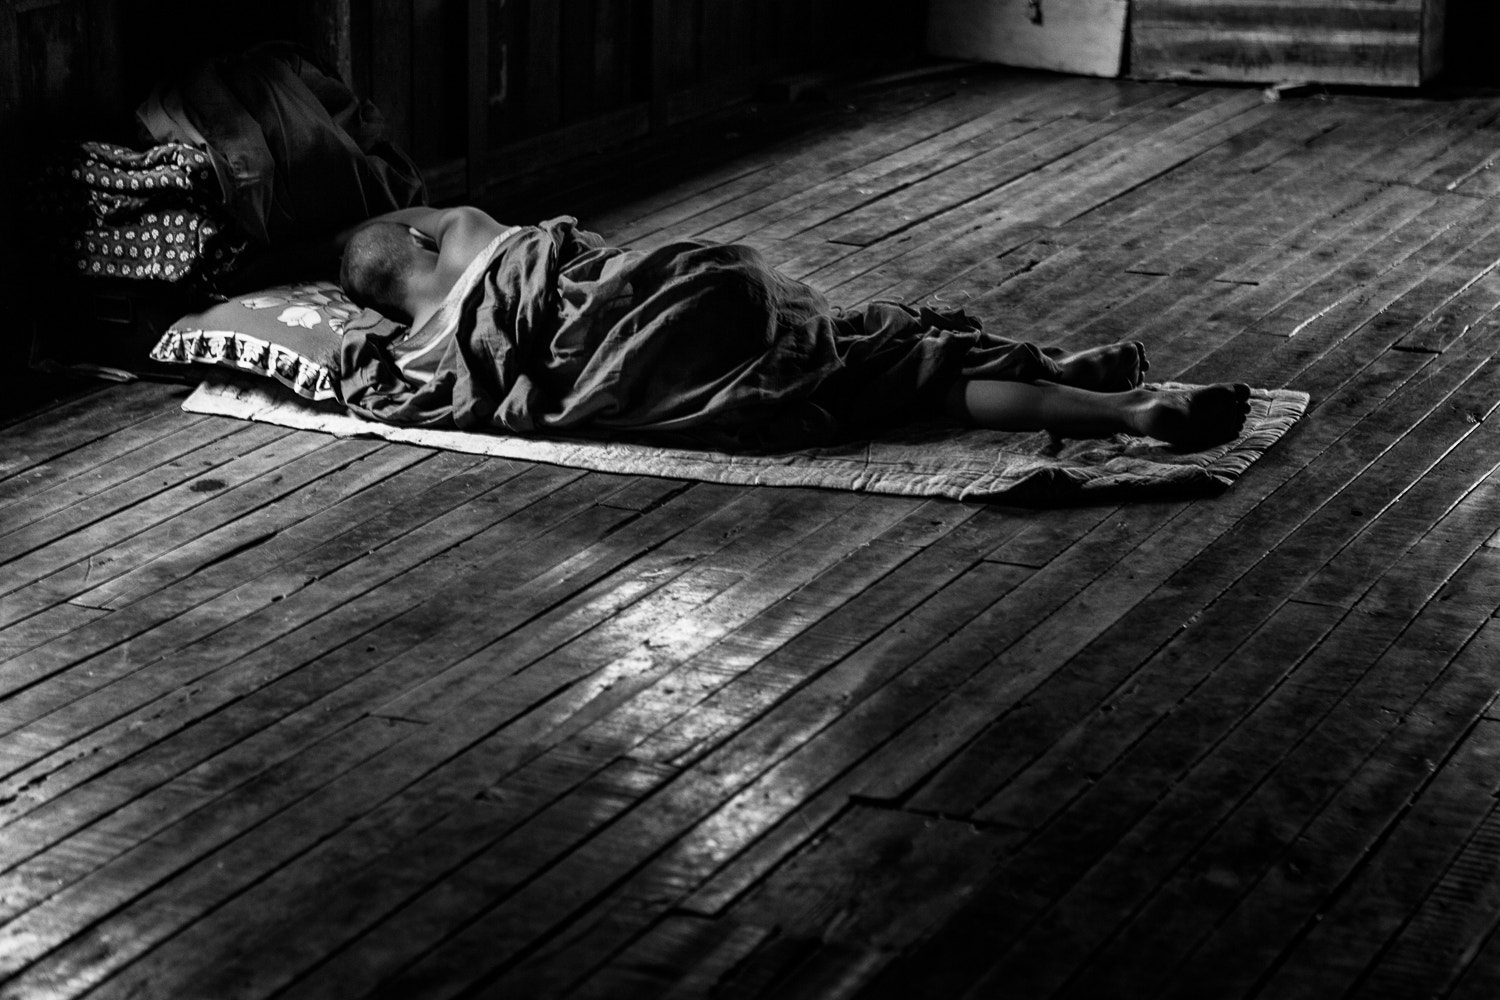 Photograph Sleeping Monk by Anthony Pond on 500px